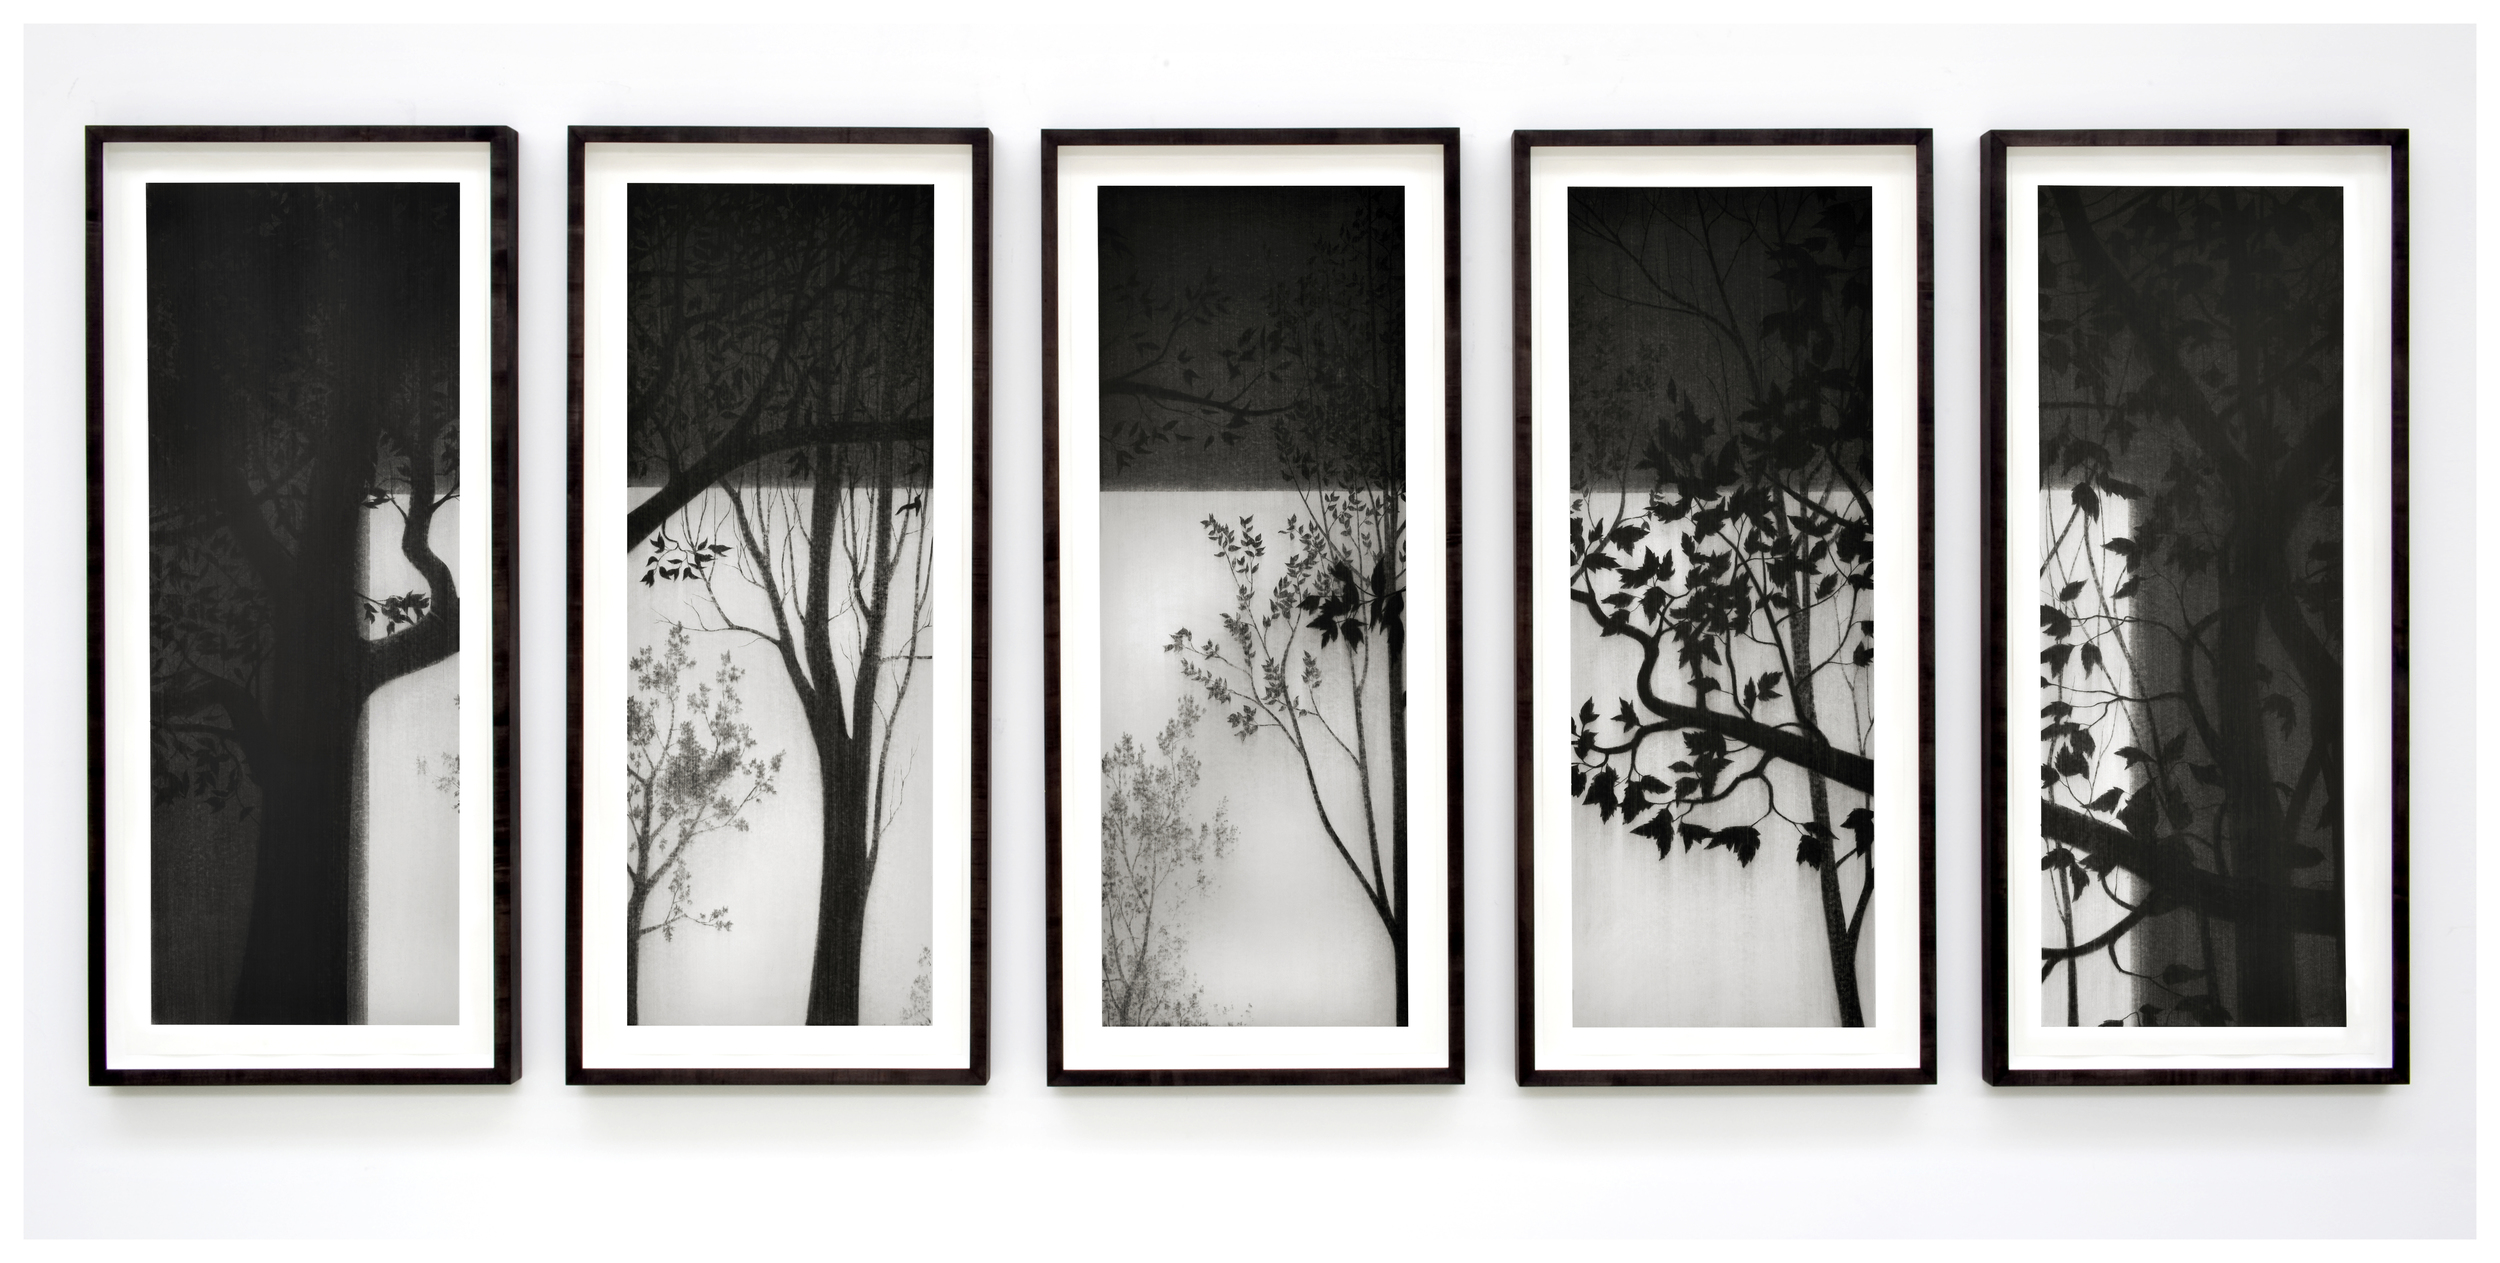 Untitled. 2011 . Charcoal on paper. 175x415cm